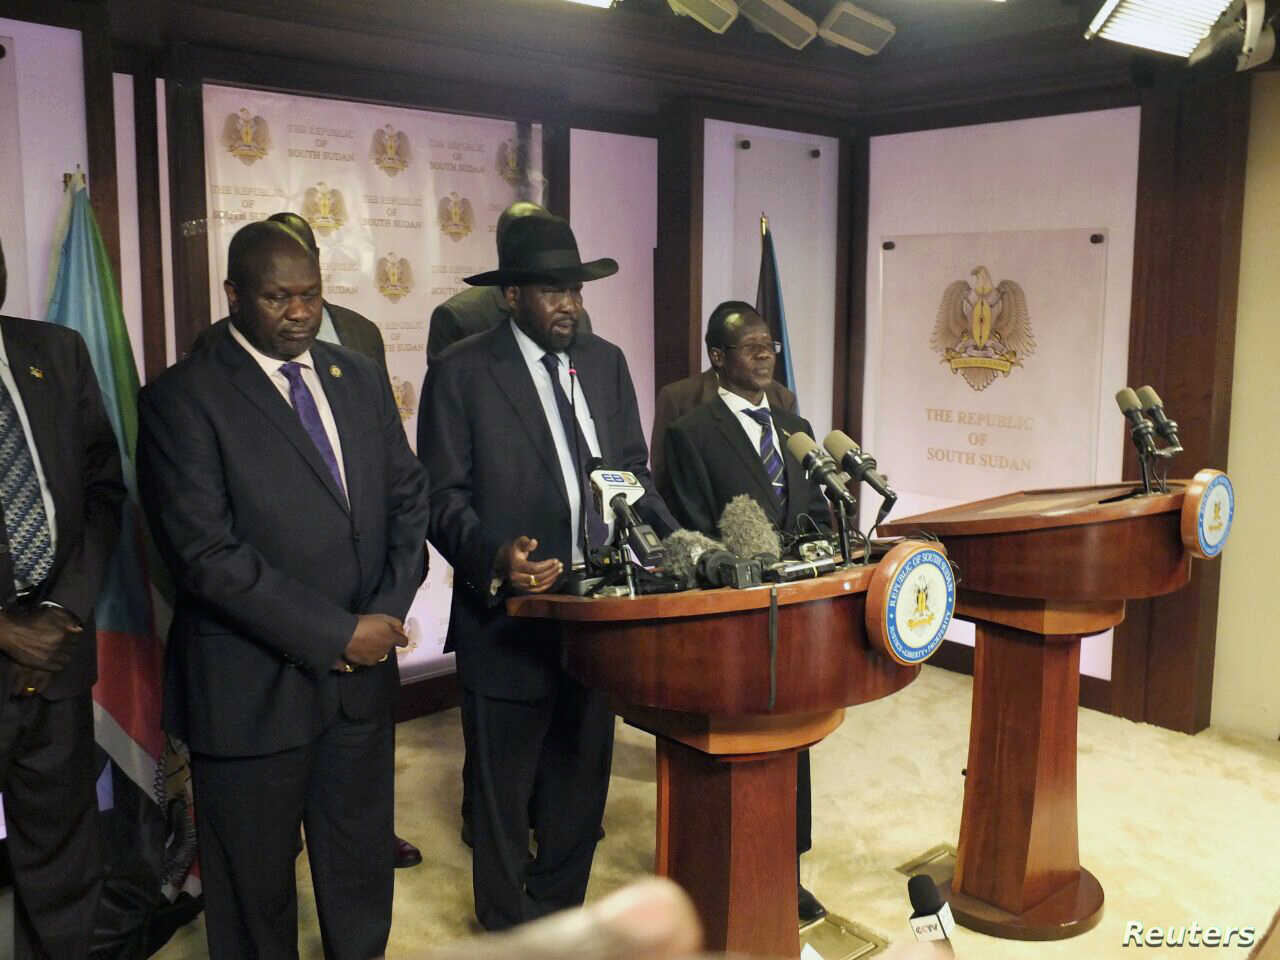 South Sudan President Salva Kiir (C), flanked by former rebel leader Riek Machar (L) and other government officials, addresses a news conference at the Presidential State House in Juba, South Sudan, July 8, 2016.